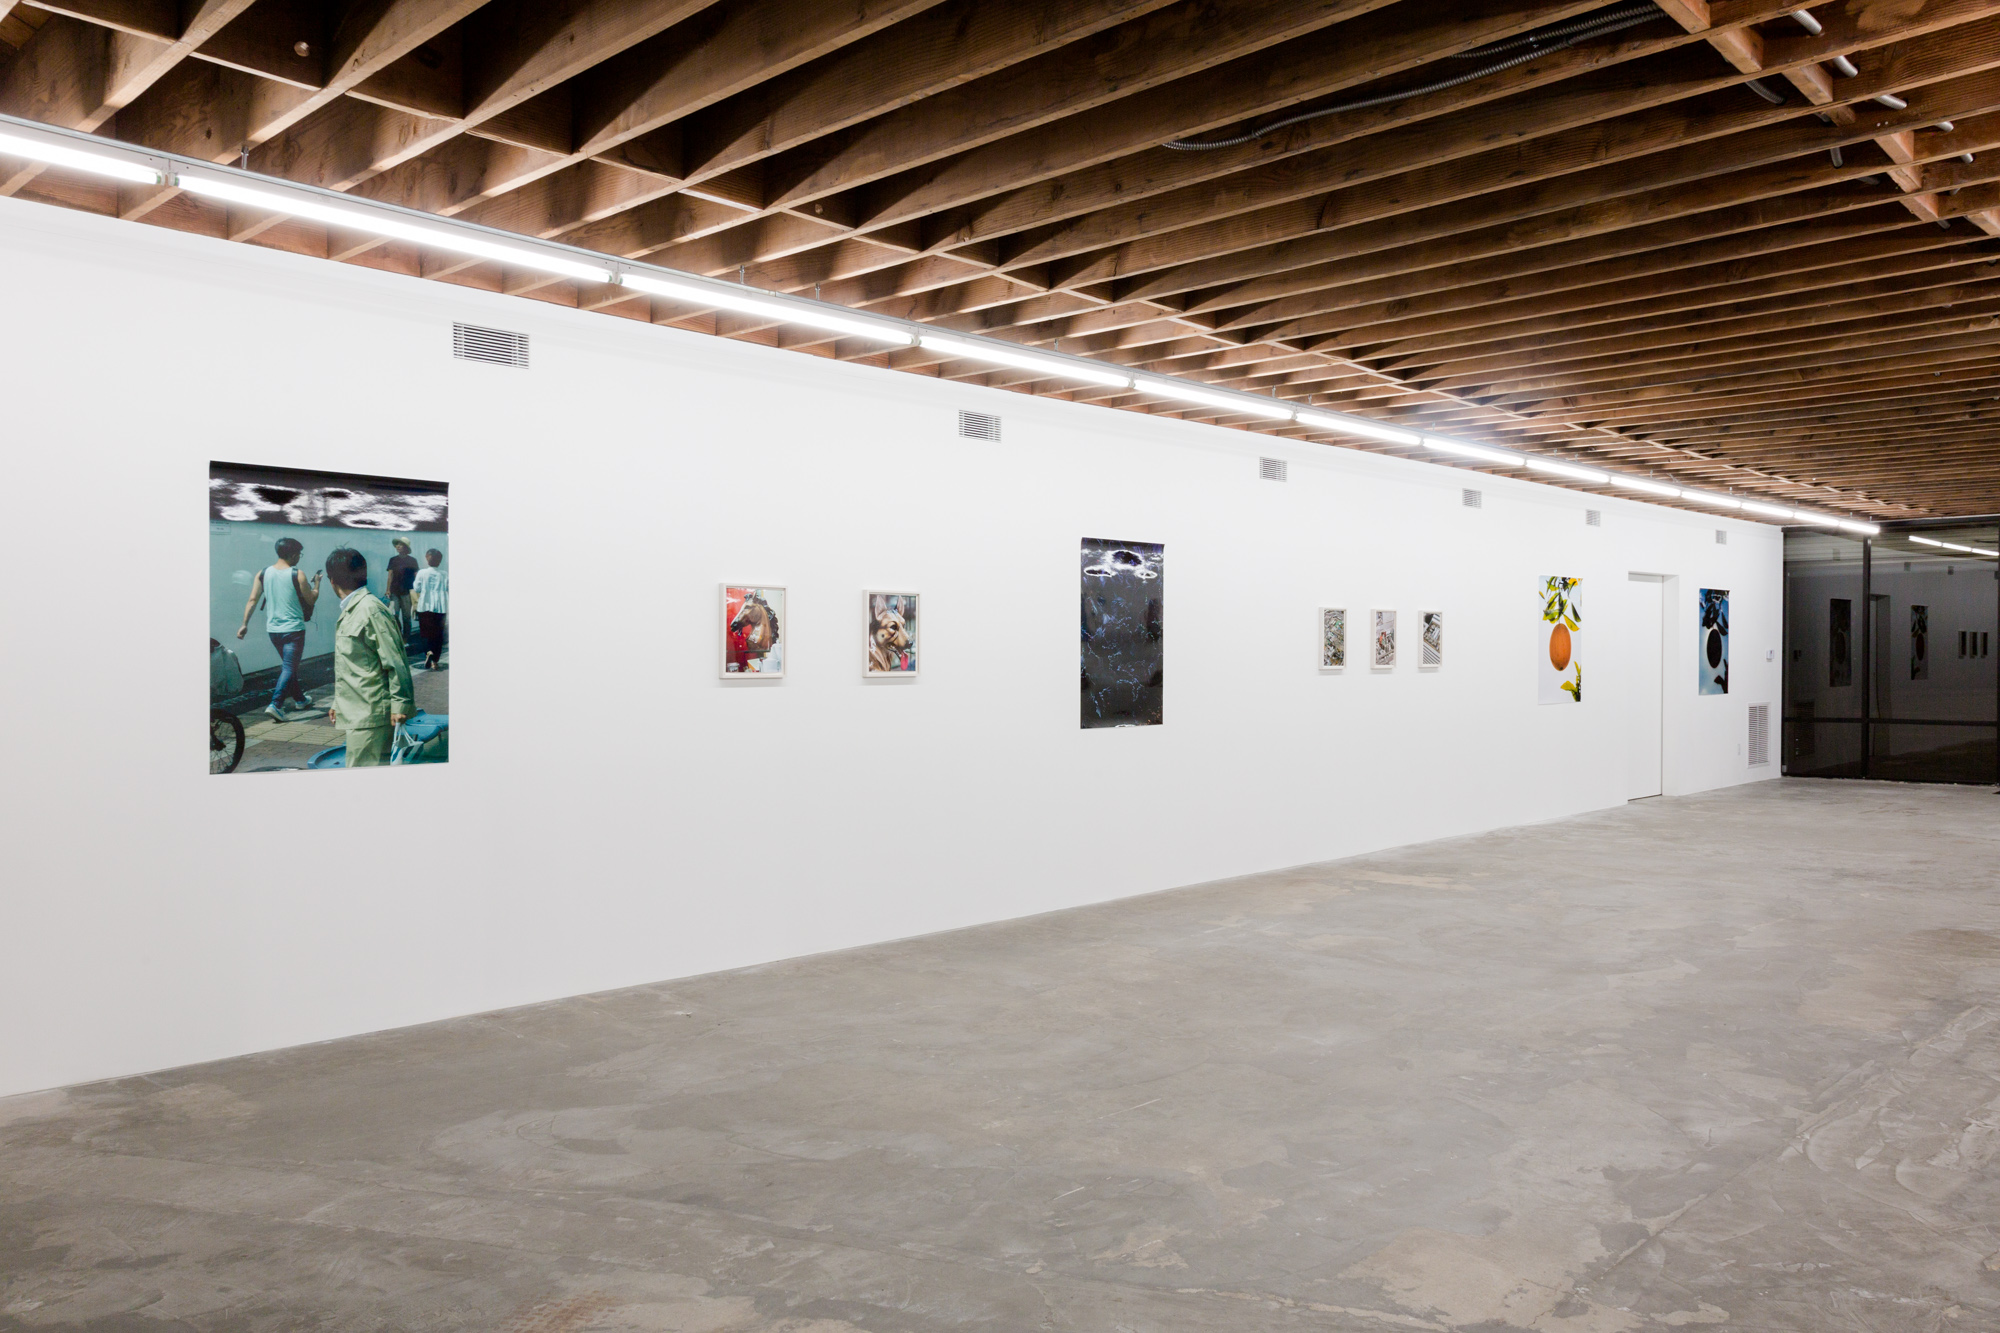 Daniel Terna and Evan Whale_LY Gallery_Exhibition Views_Overall_2019_websize-3.jpg